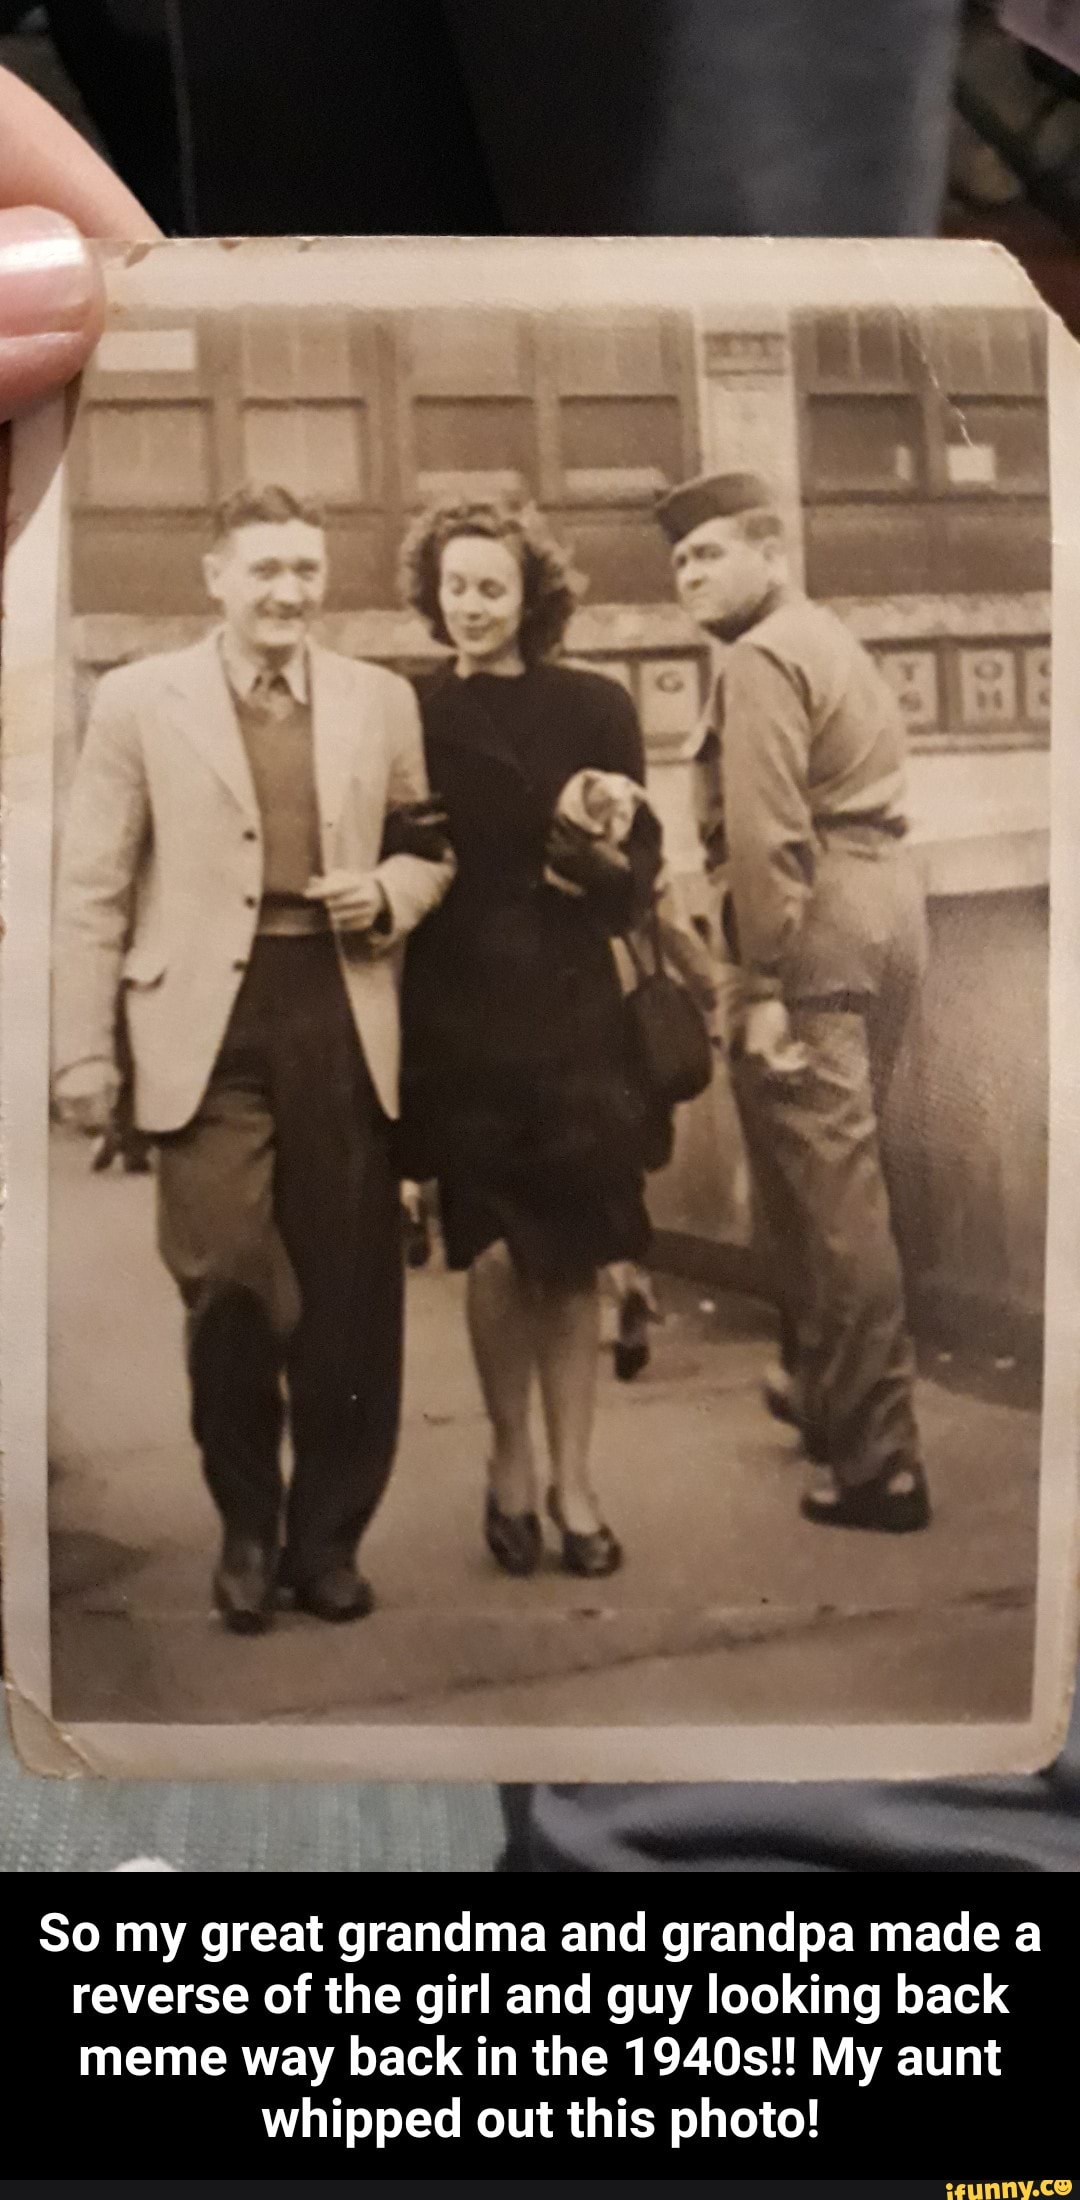 So My Great Grandma And Grandpa Made A Reverse Of The Girl And Guy Looking Back So My Great Grandma And Grandpa Made A Reverse Of The Girl And Guy Looking